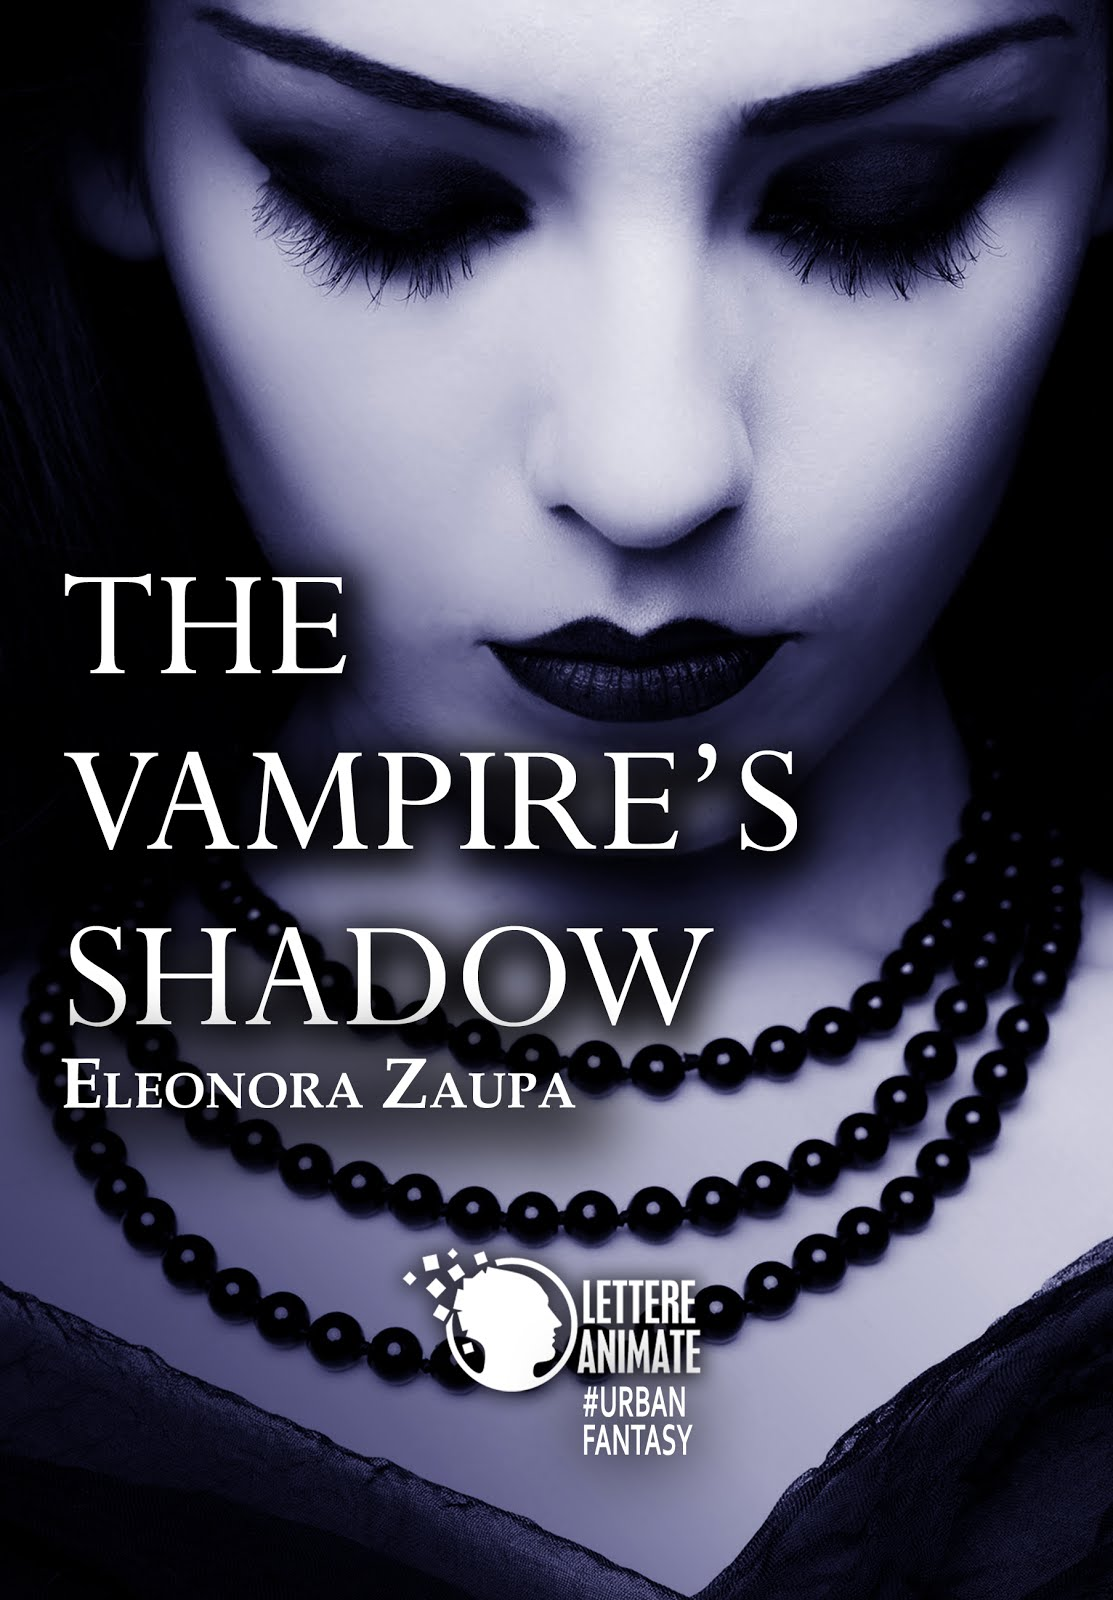 The Vampire's Shadows